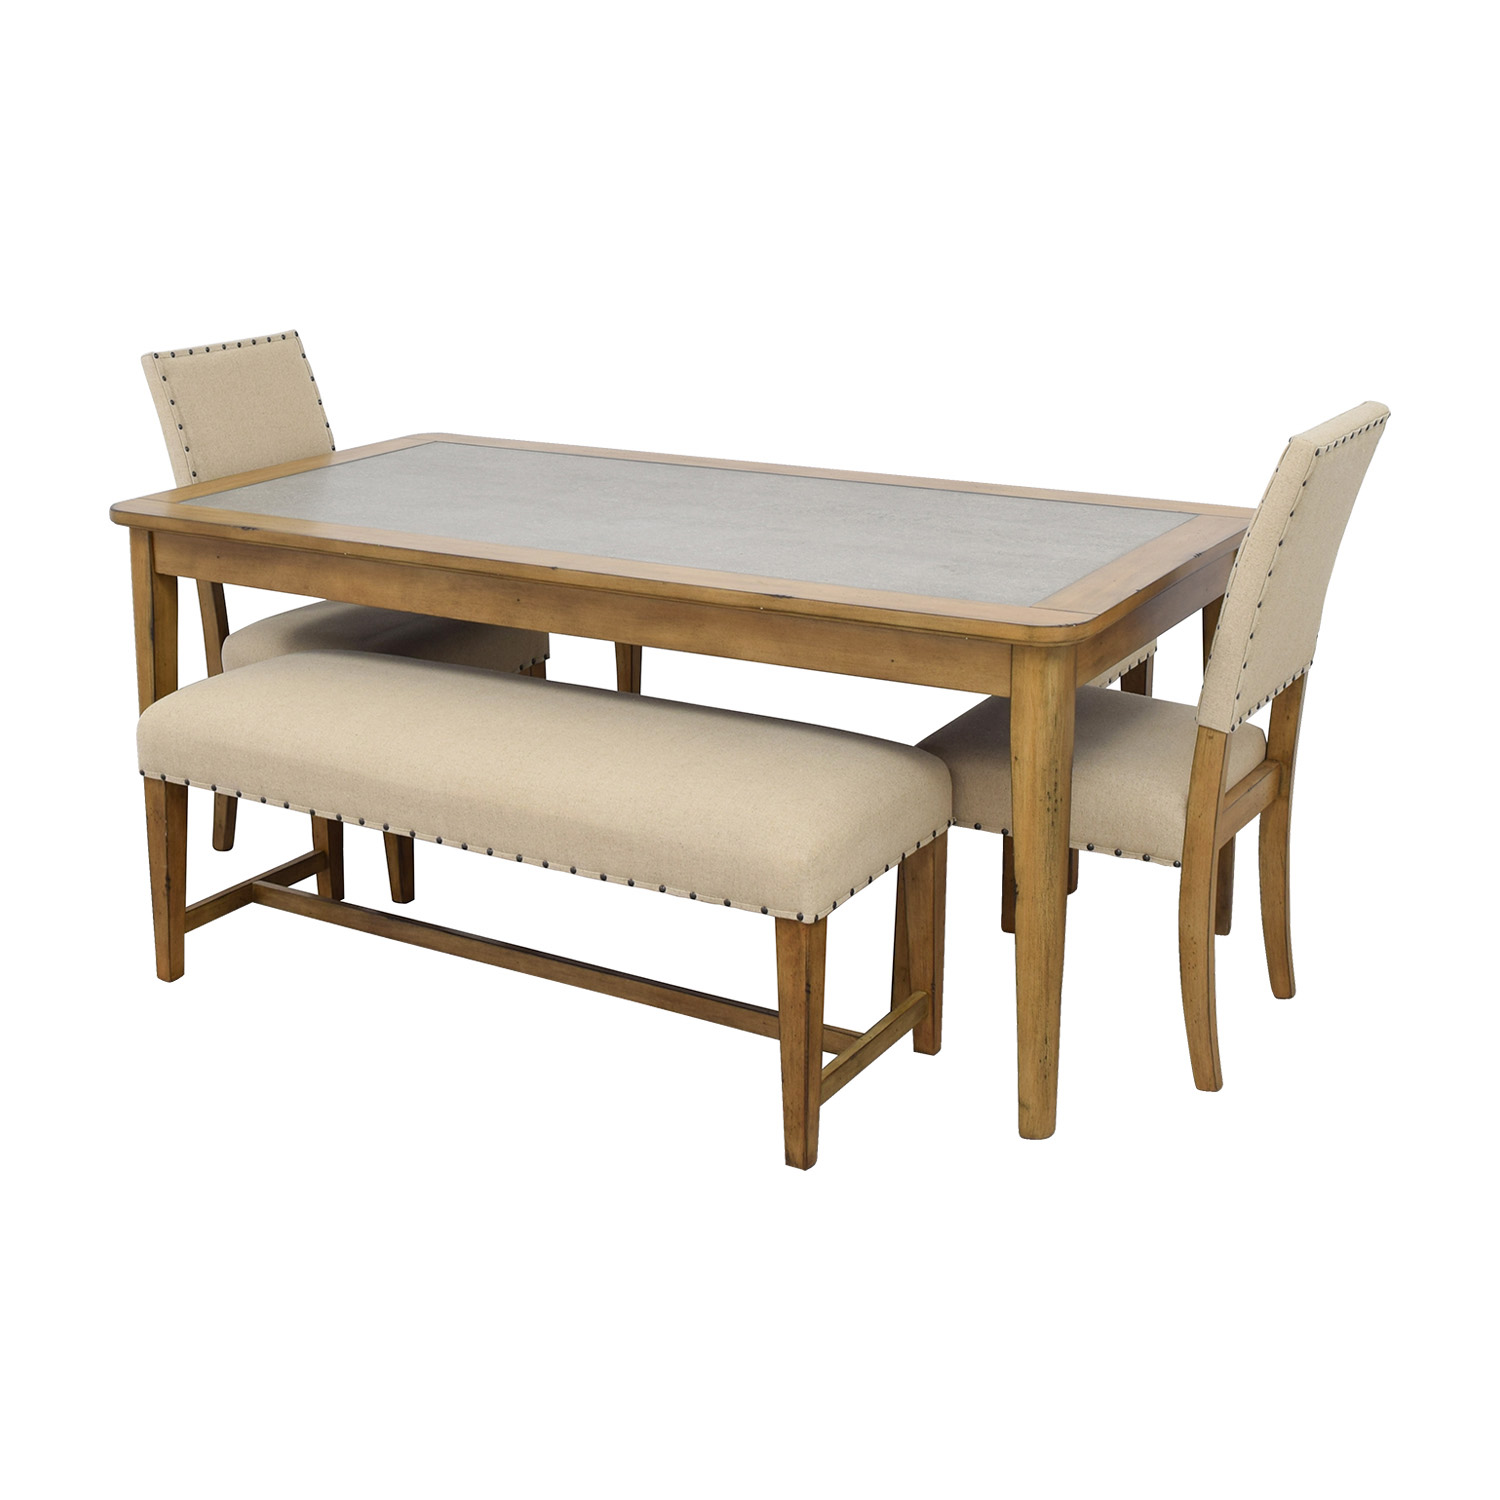 64 Off Raymour Flanigan Raymour Flanigan Gray Street Dining Set Tables